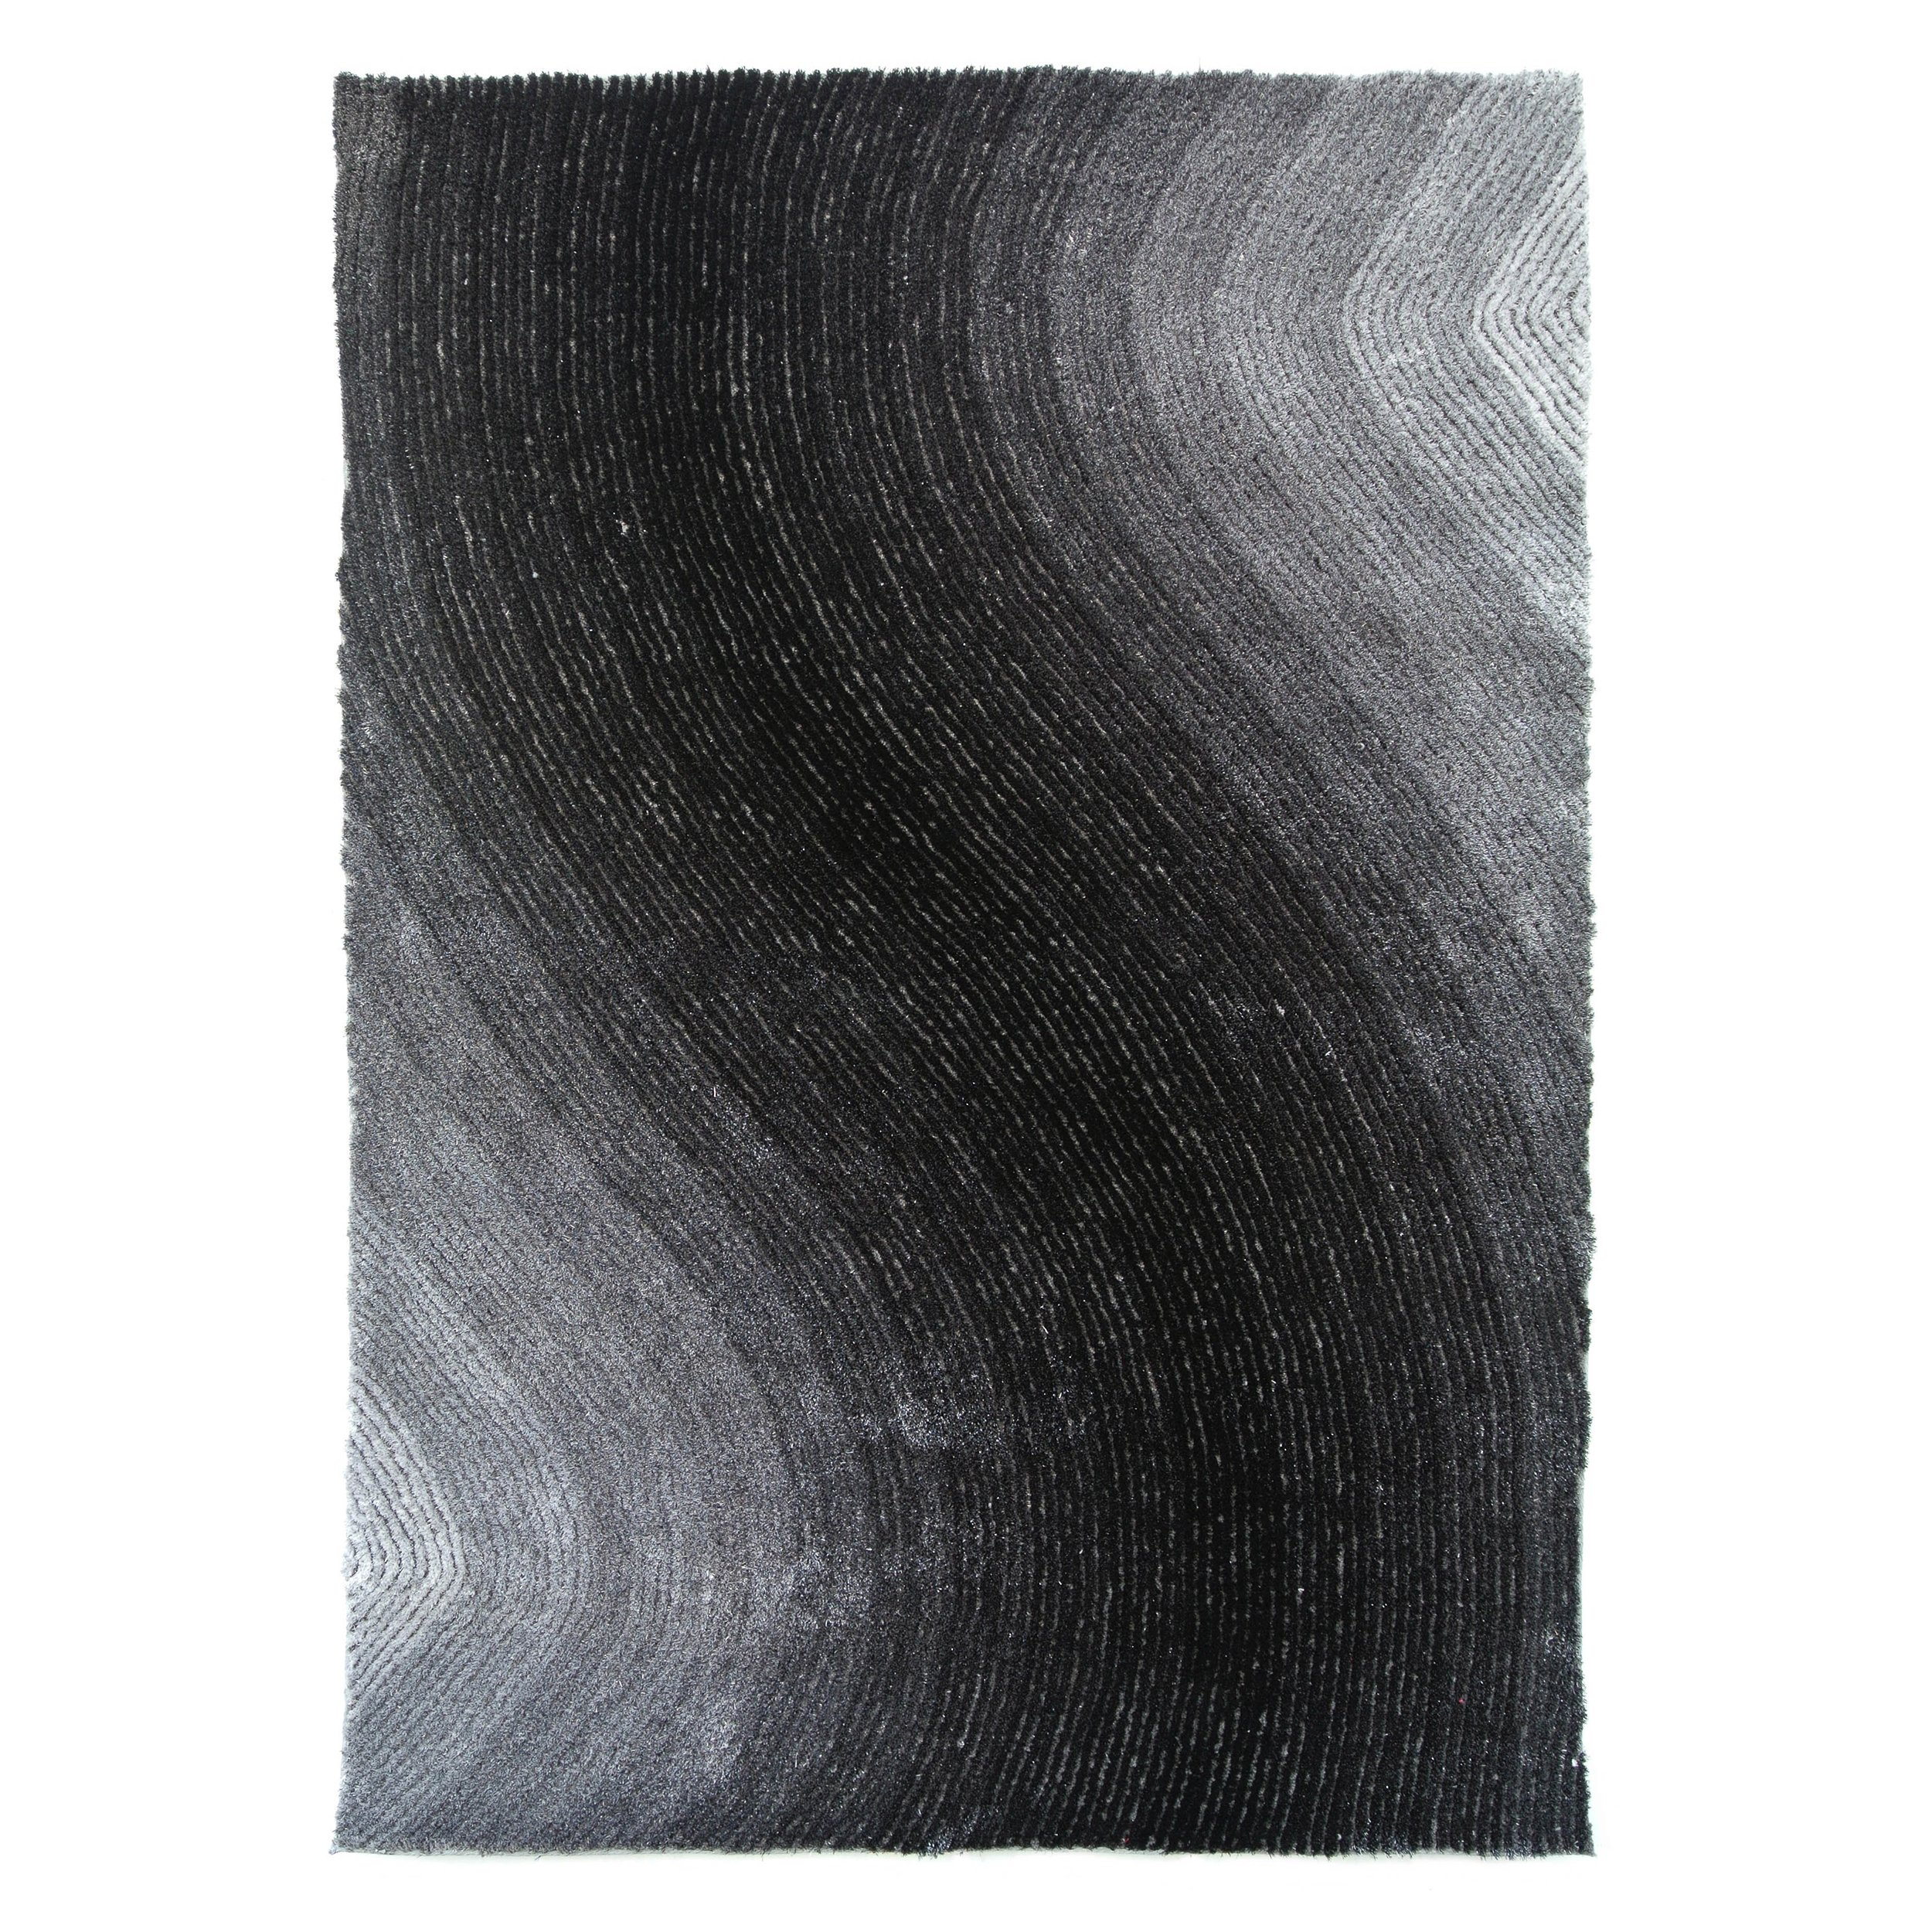 Blazing Needles Vibrating Light Gradated Shag Rug, 5-Feet by 7-Feet, Black/Gray by Blazing Needles (Image #1)